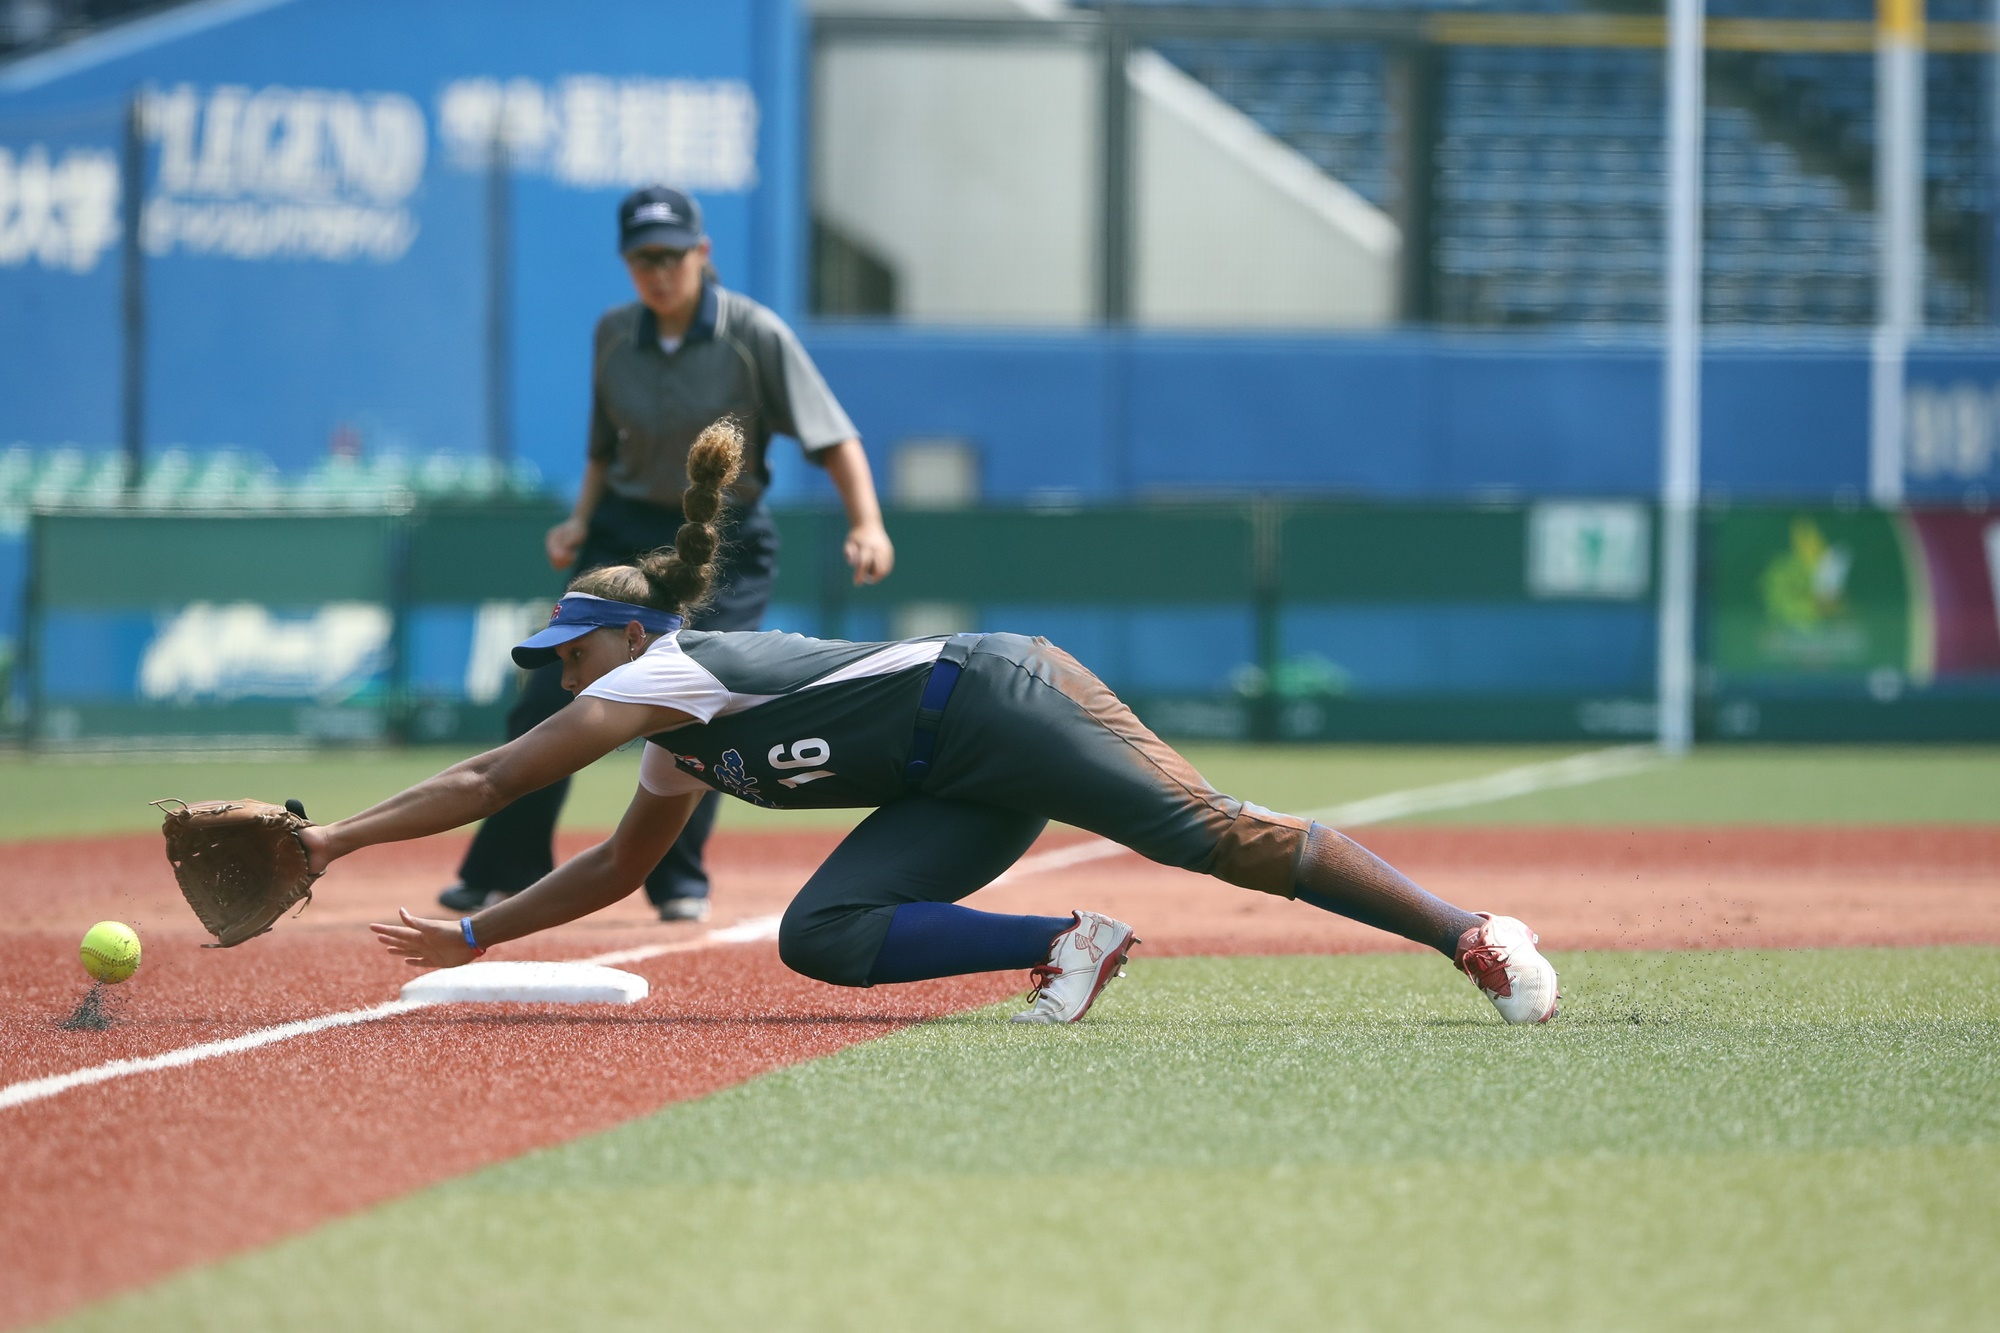 A great diving catch by Puerto Rico's Quianna Diaz